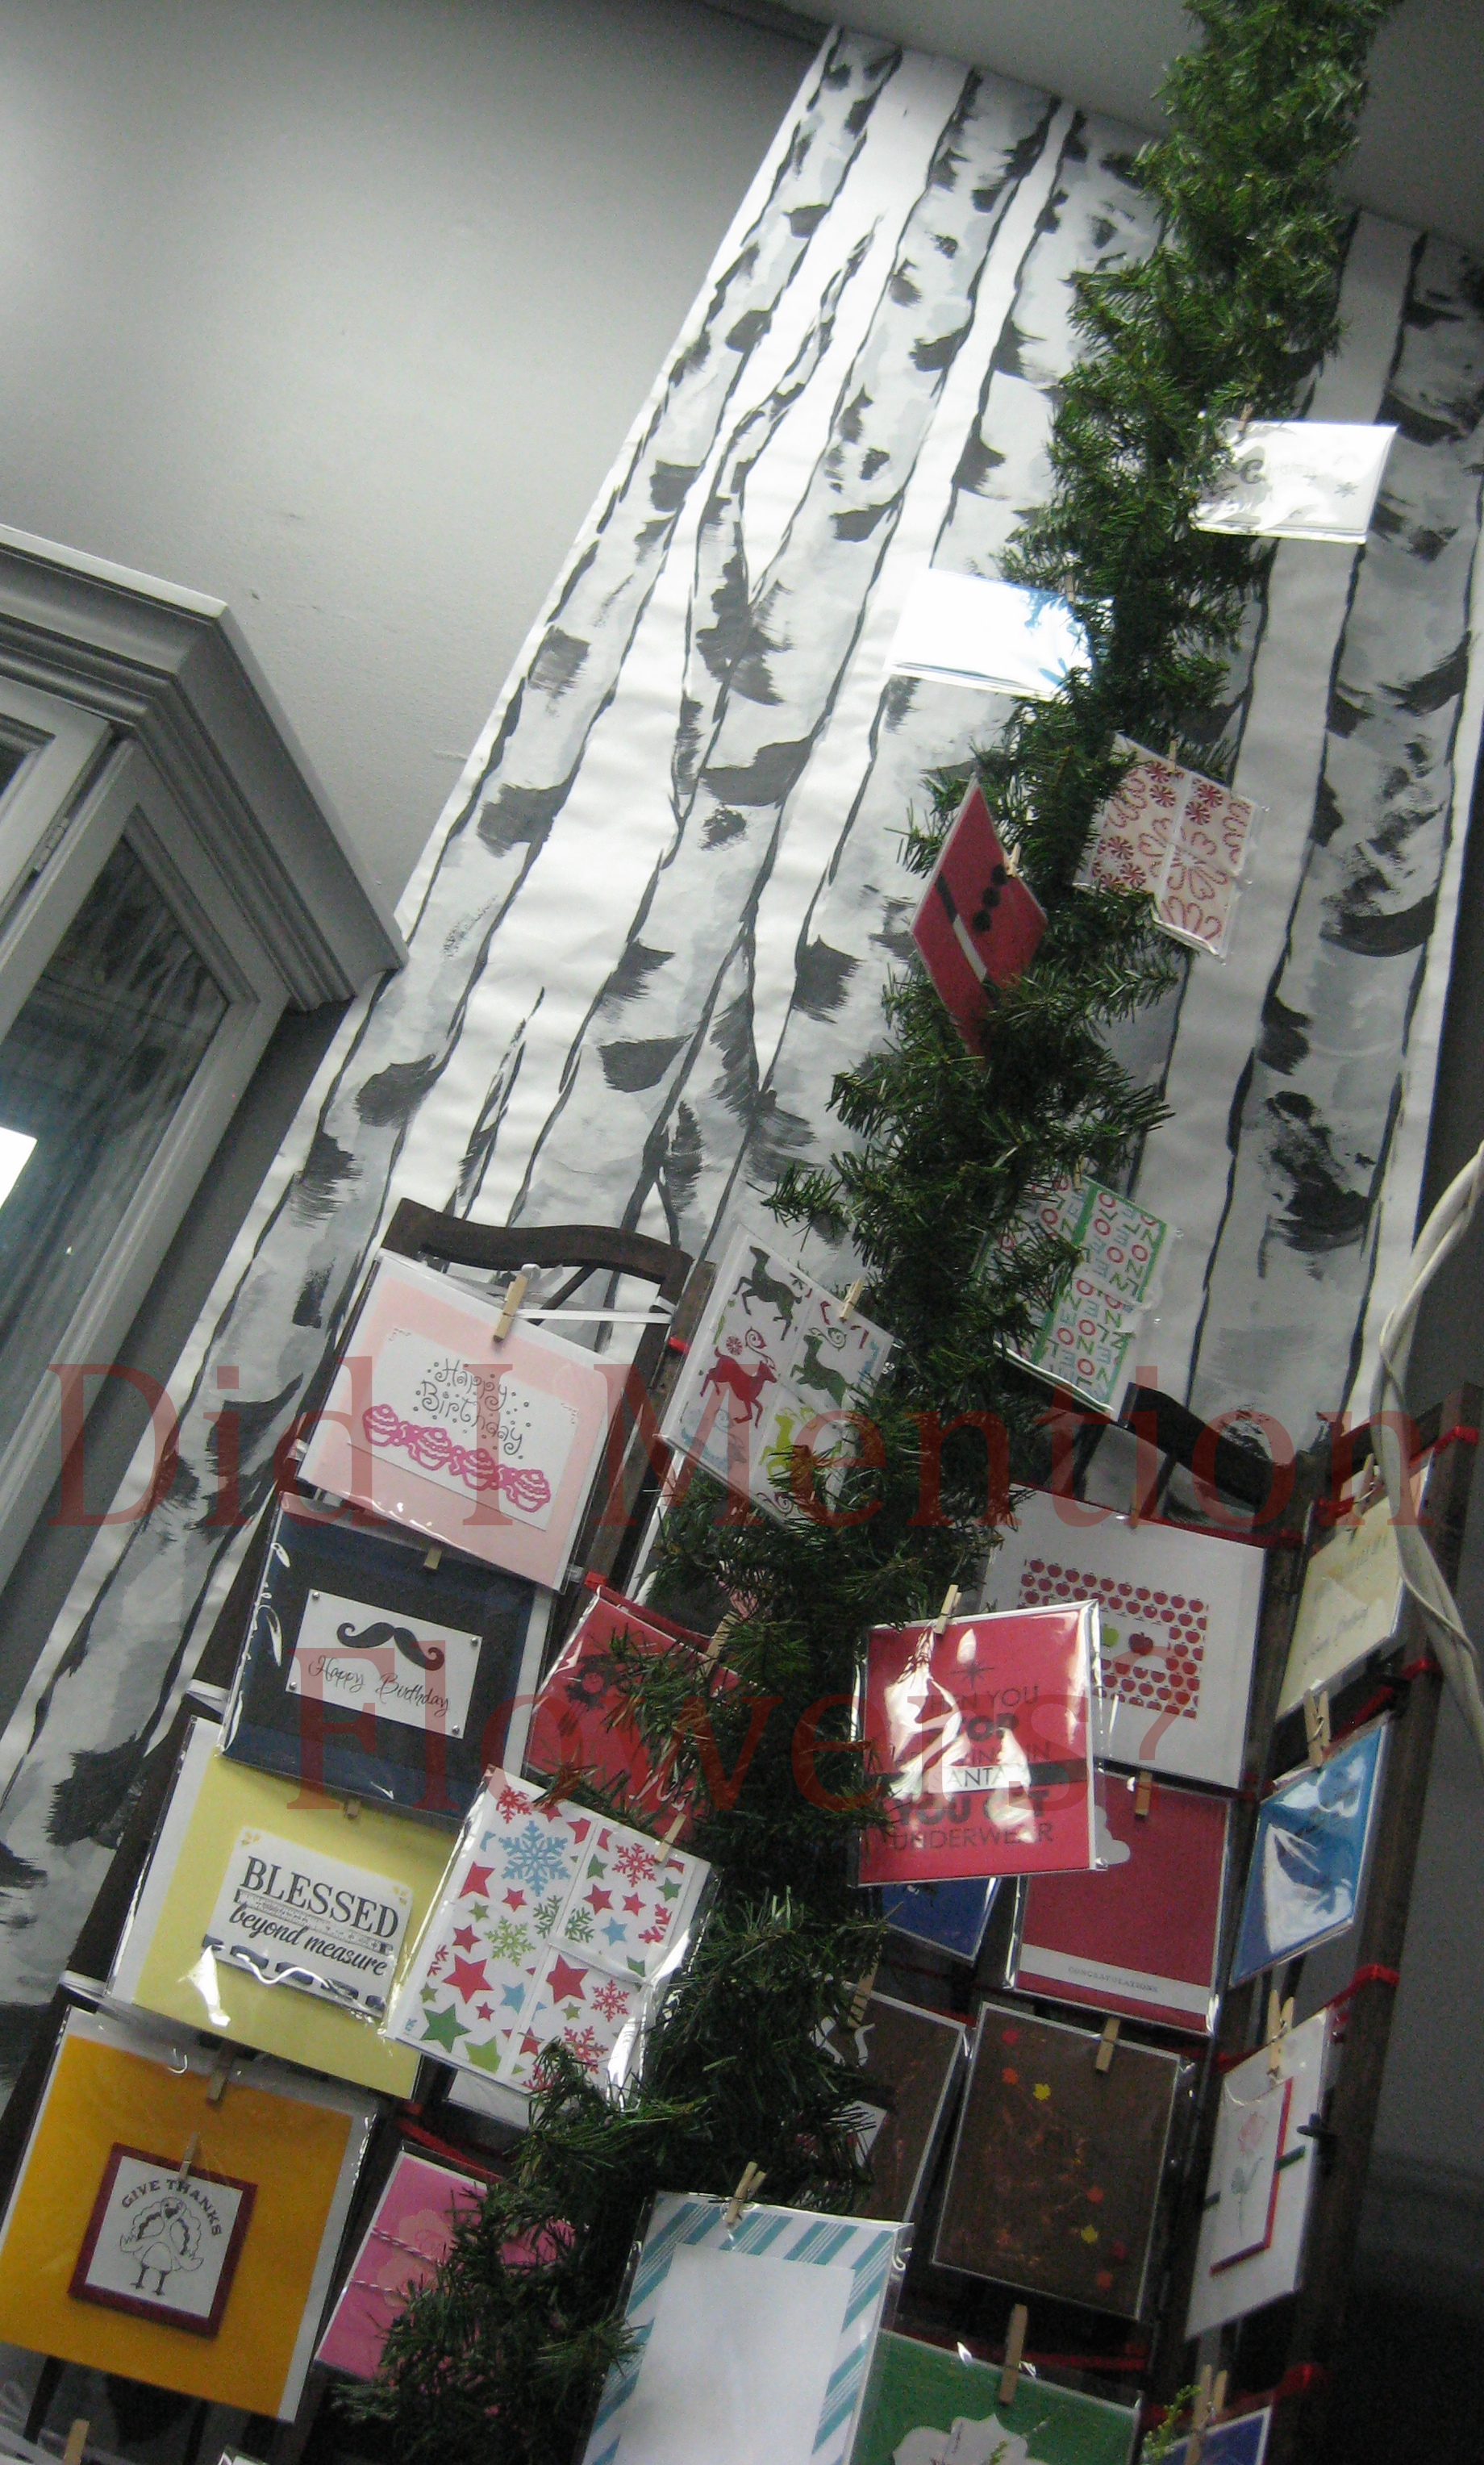 16 - Oh! What a Card!'s Card Garland